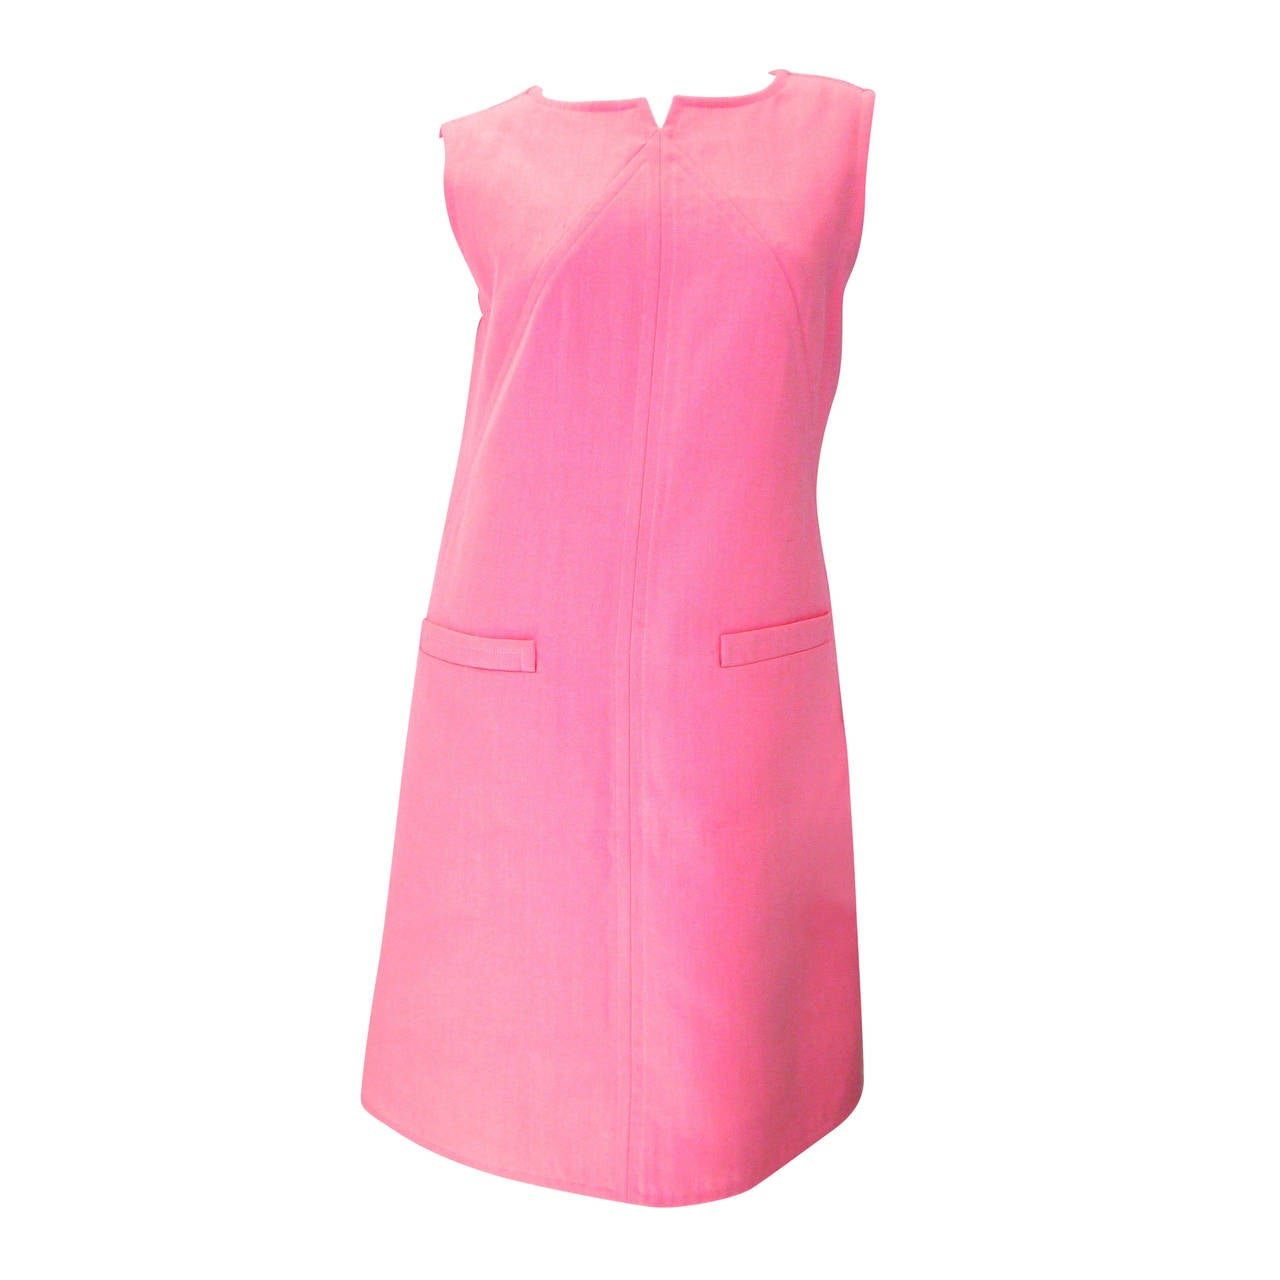 New Courreges Pink Dress - Size 40